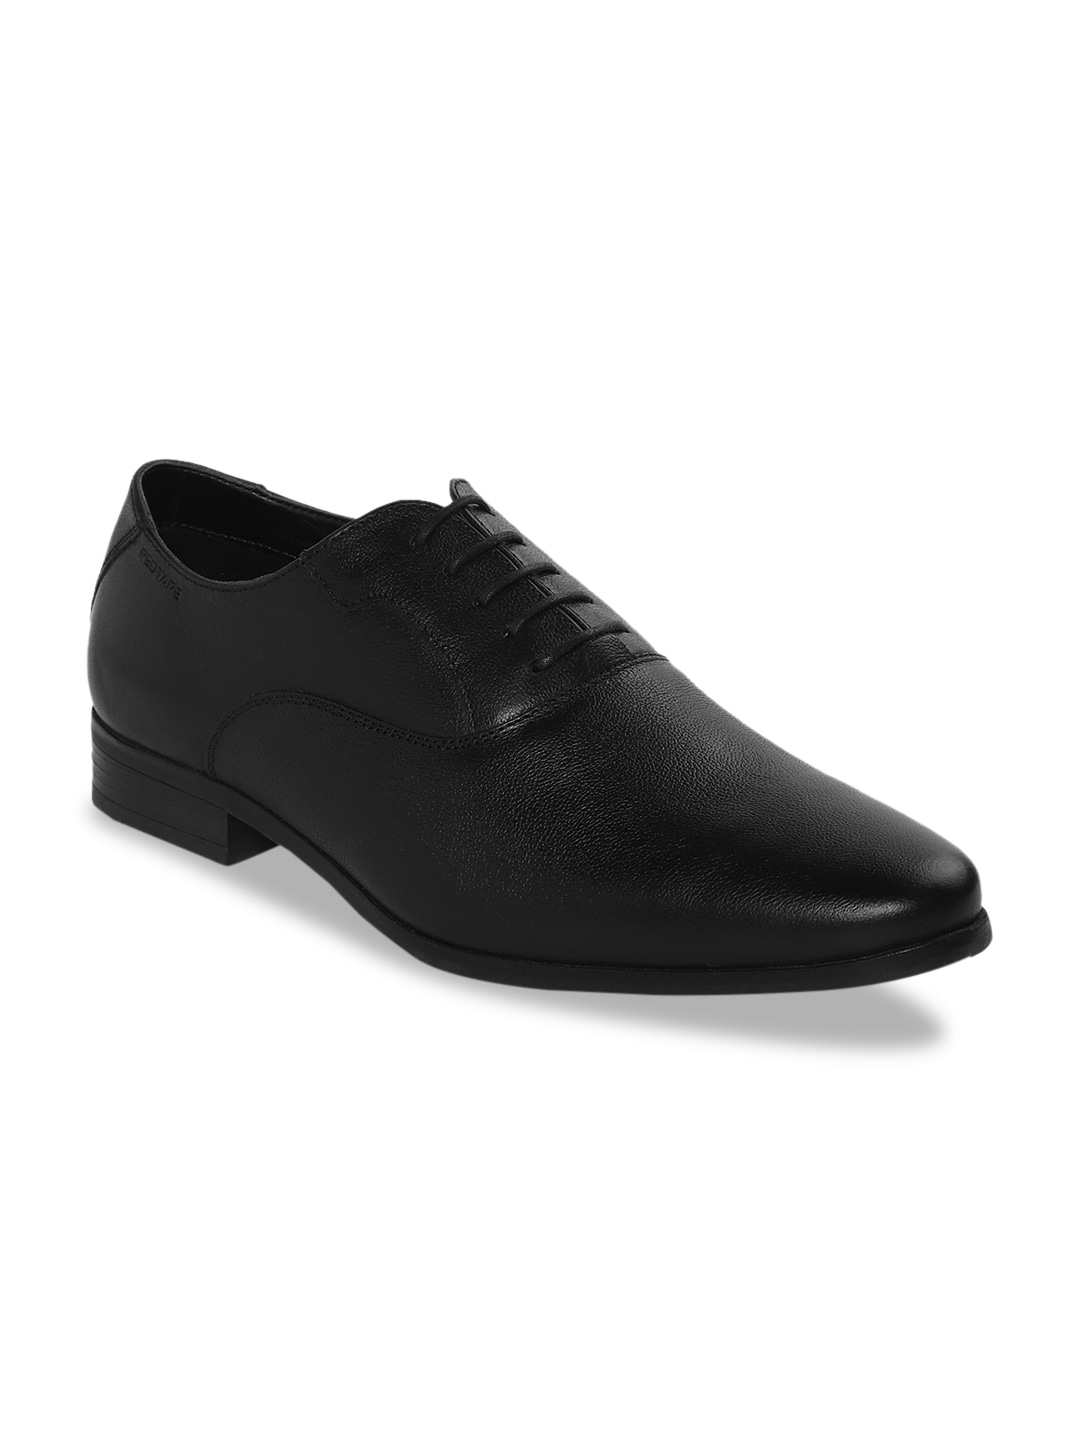 Black Solid Leather Formal Oxfords